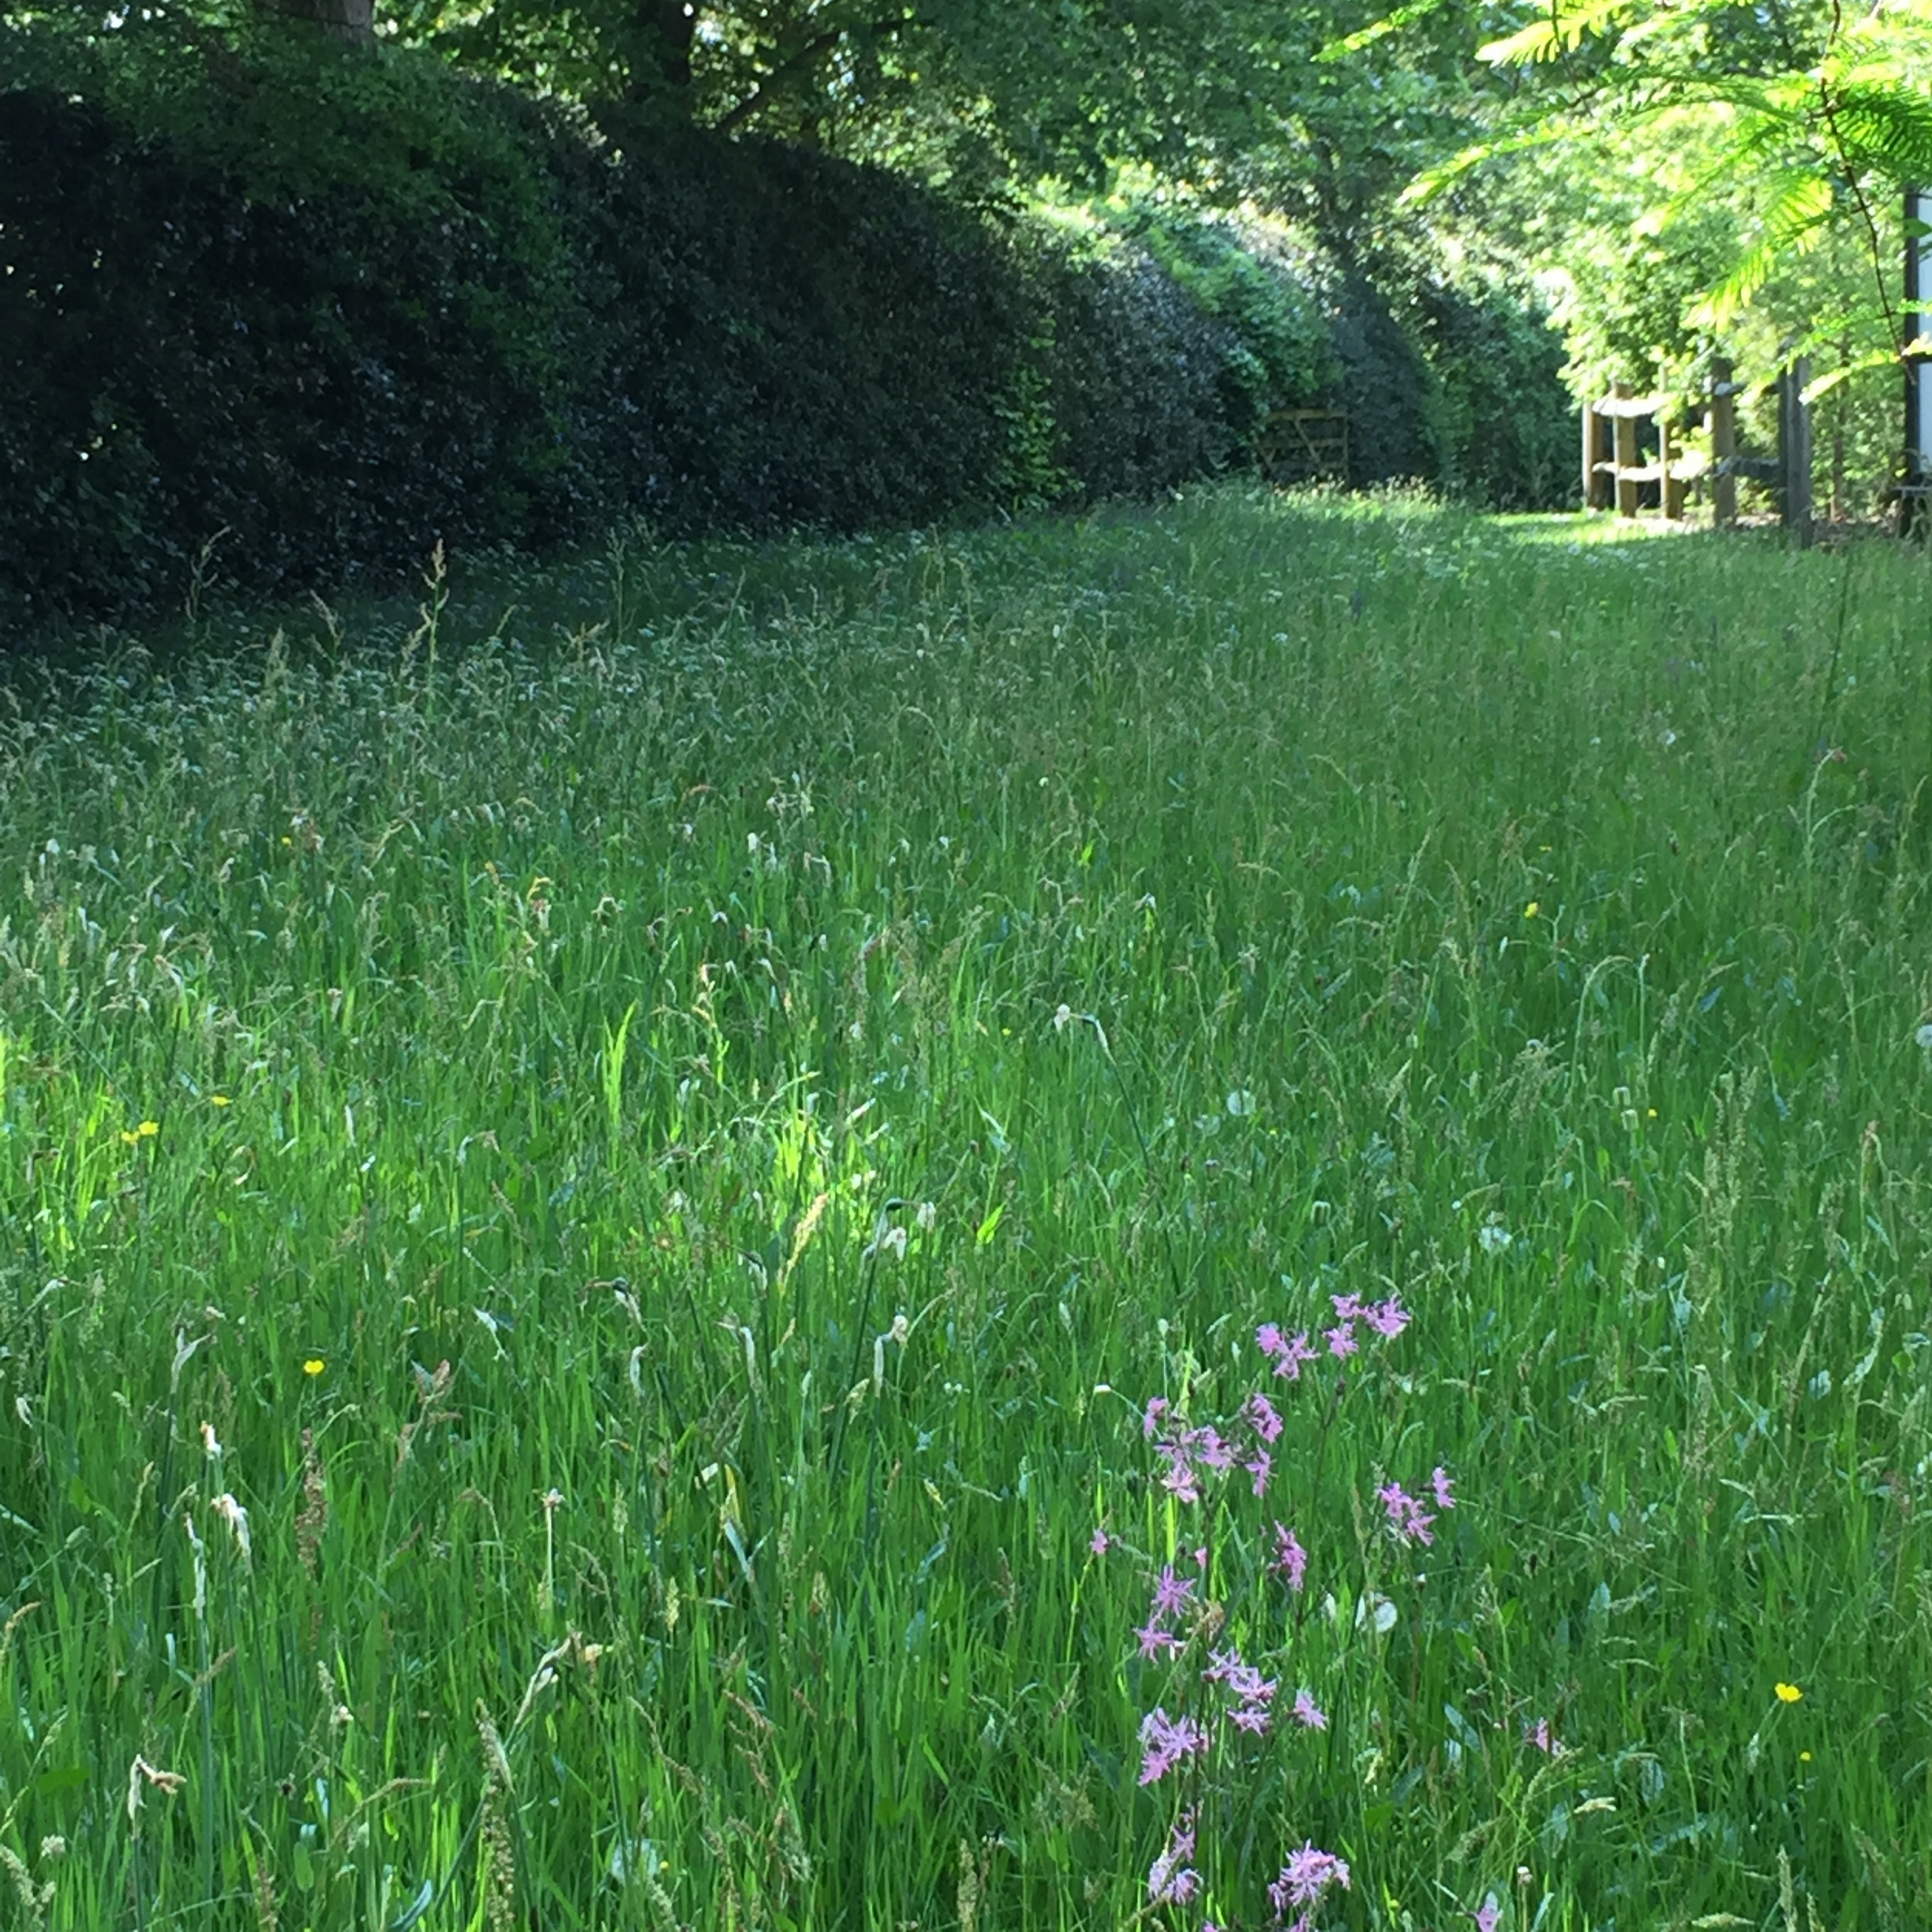 Ragged robin flowering pinkly in my parents' meadow.